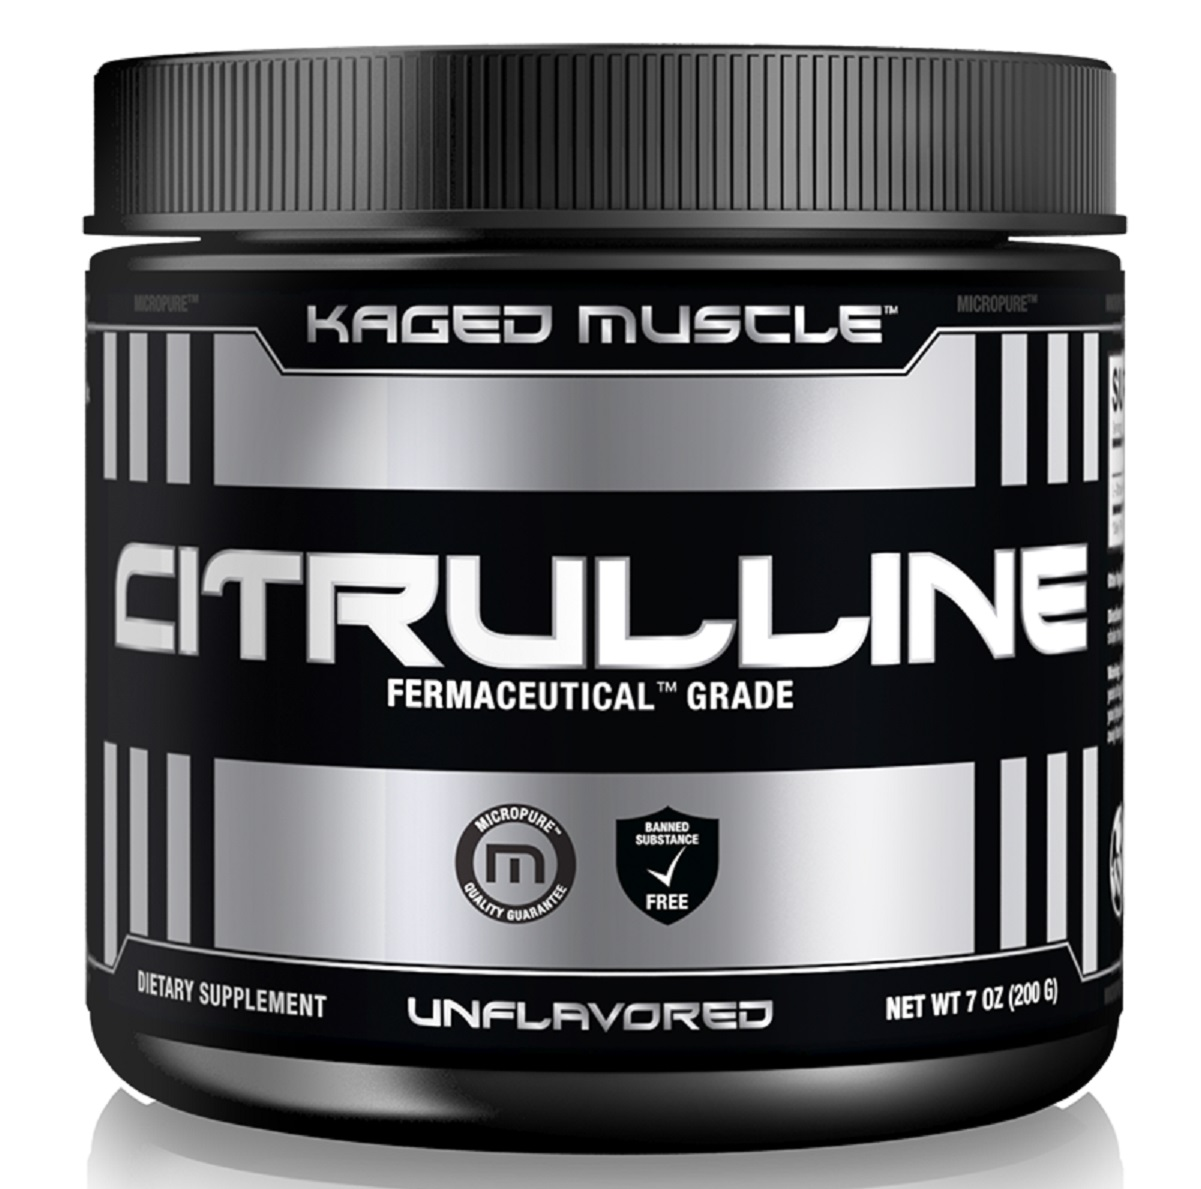 CITRULLINE 200g - Kaged Muscle